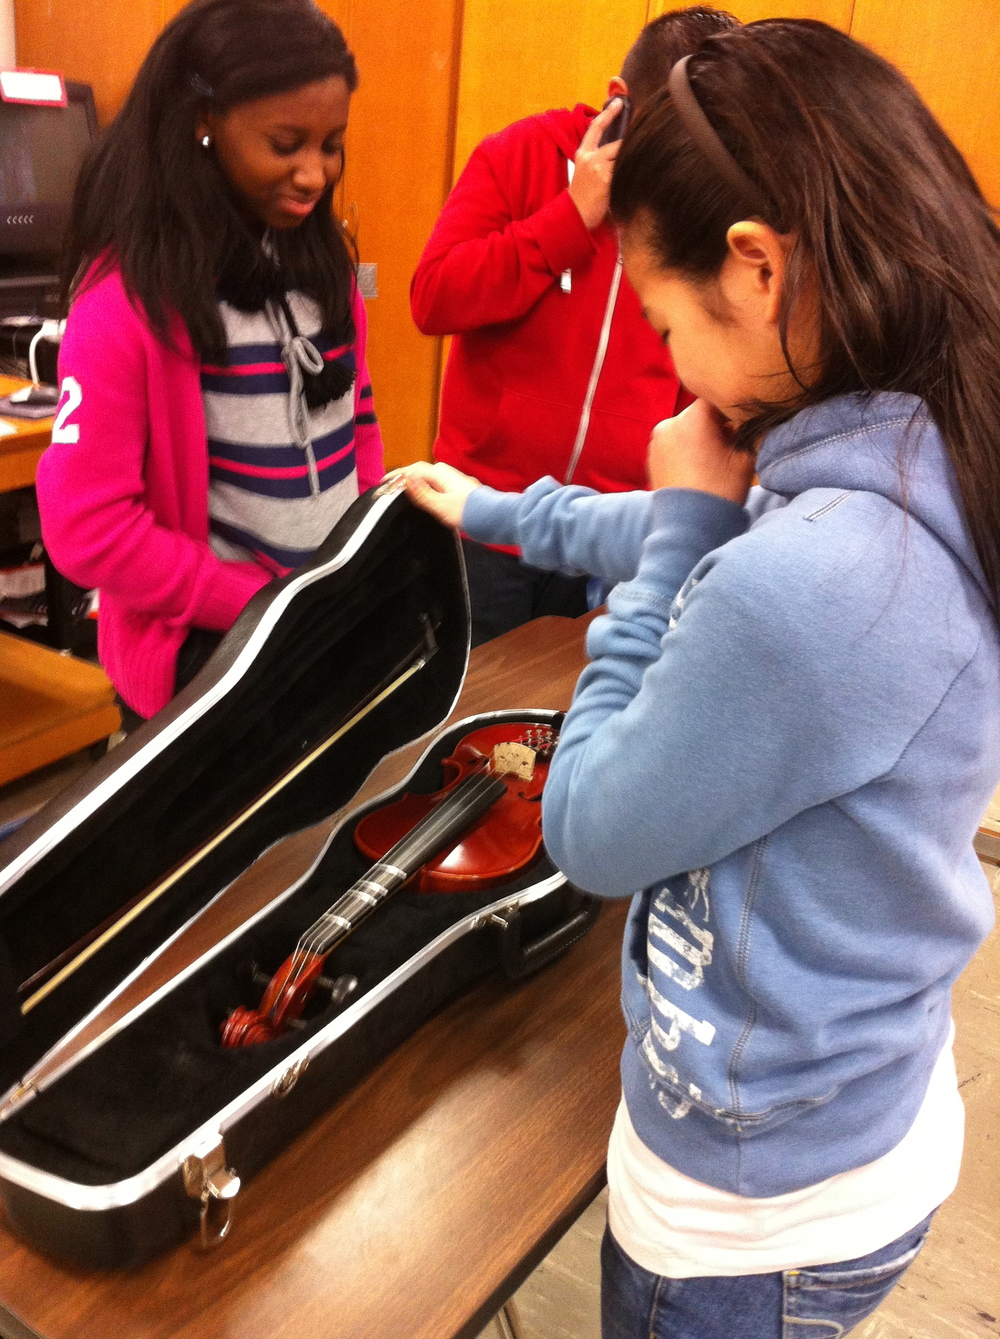 Rep Neal surprised one of the students on the Debate Team, and bought her a new violin!!